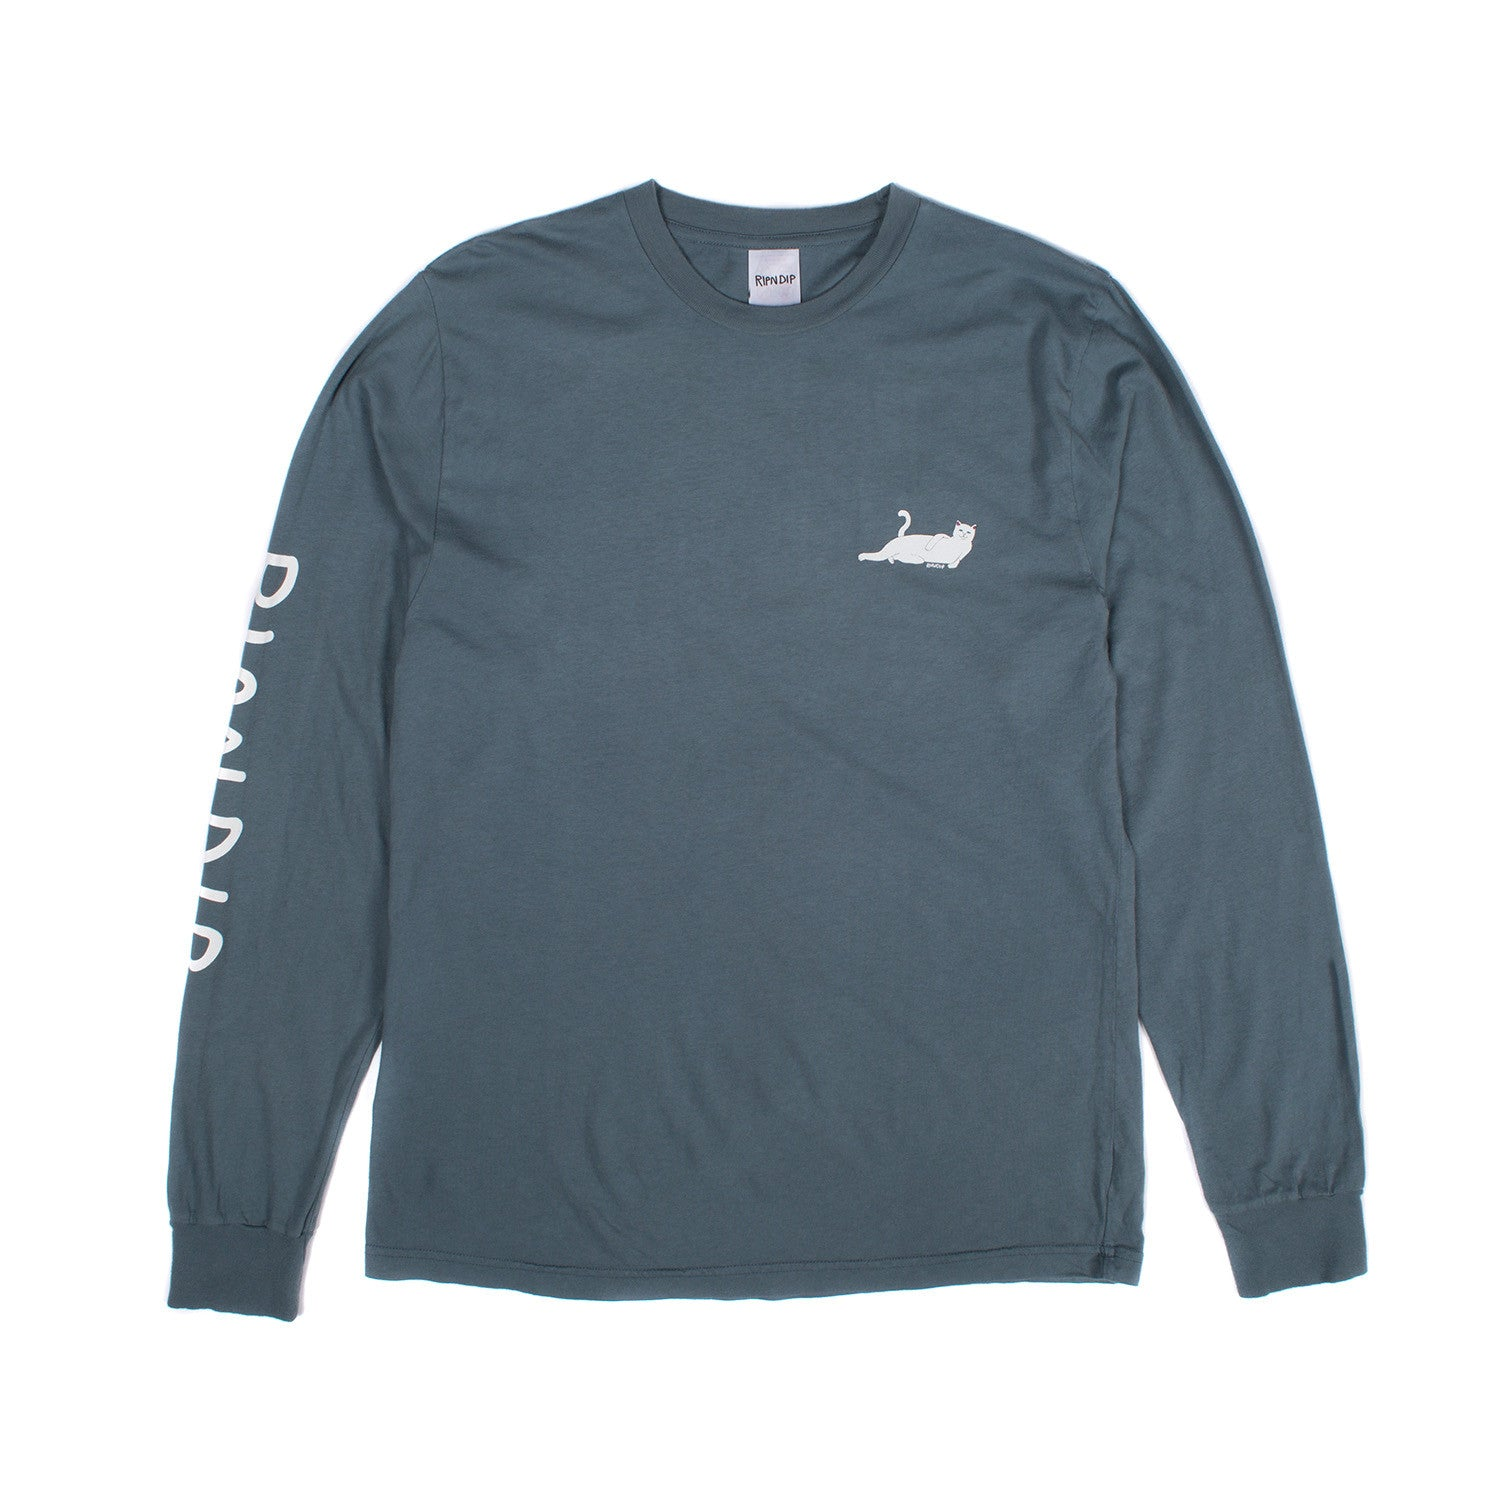 Castanza L/S (Washed Blue)